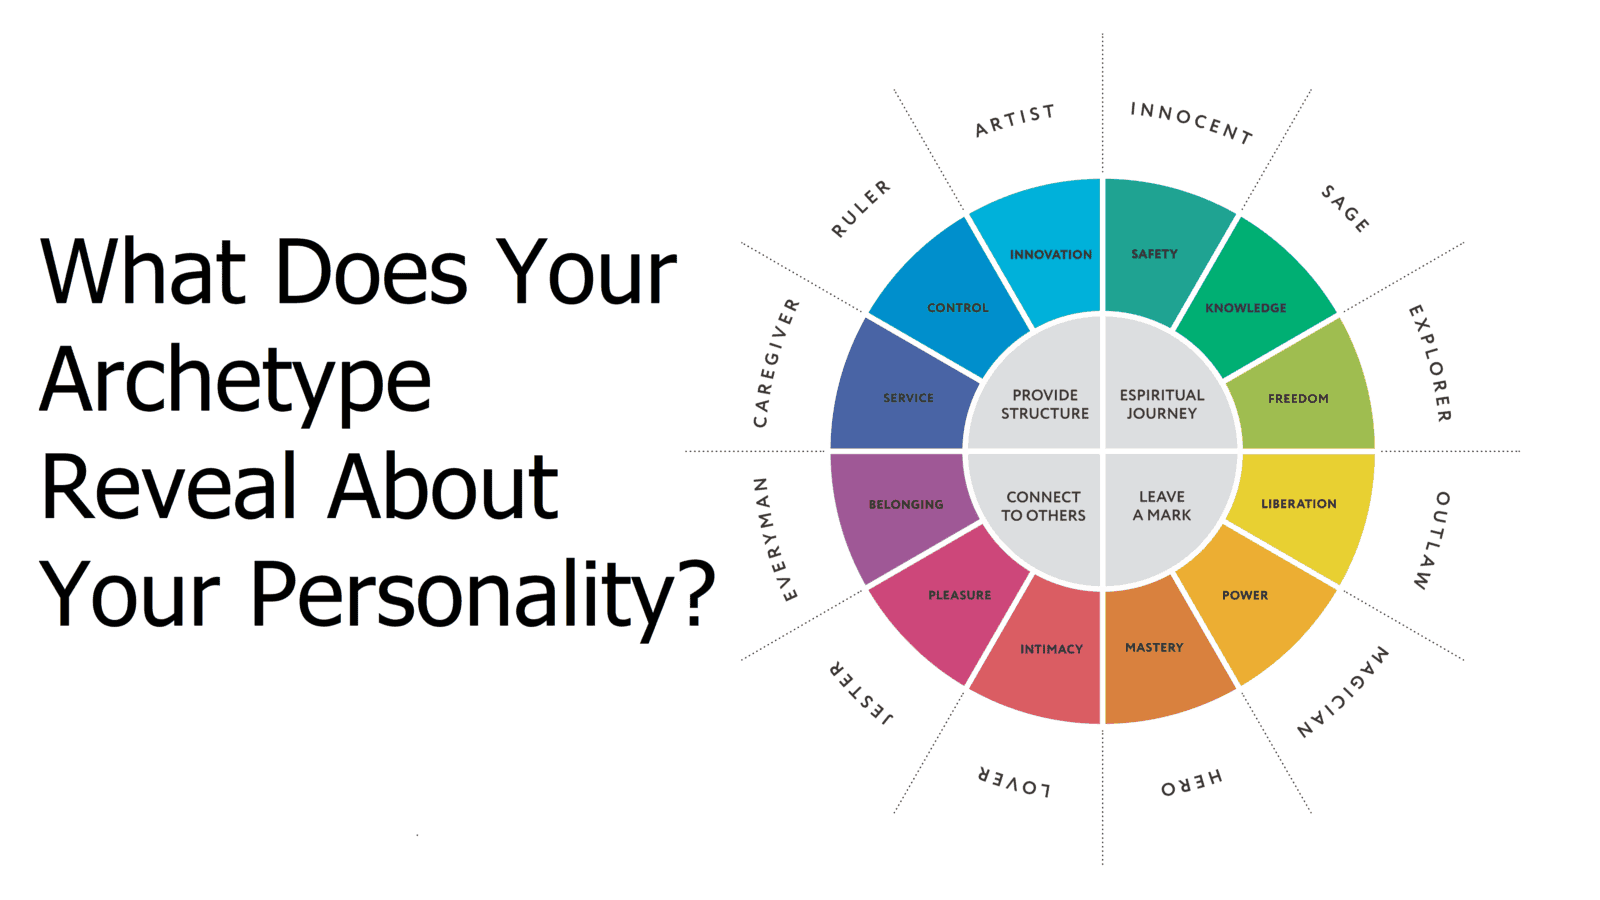 What Does Your Archetype Reveal About Your Personality